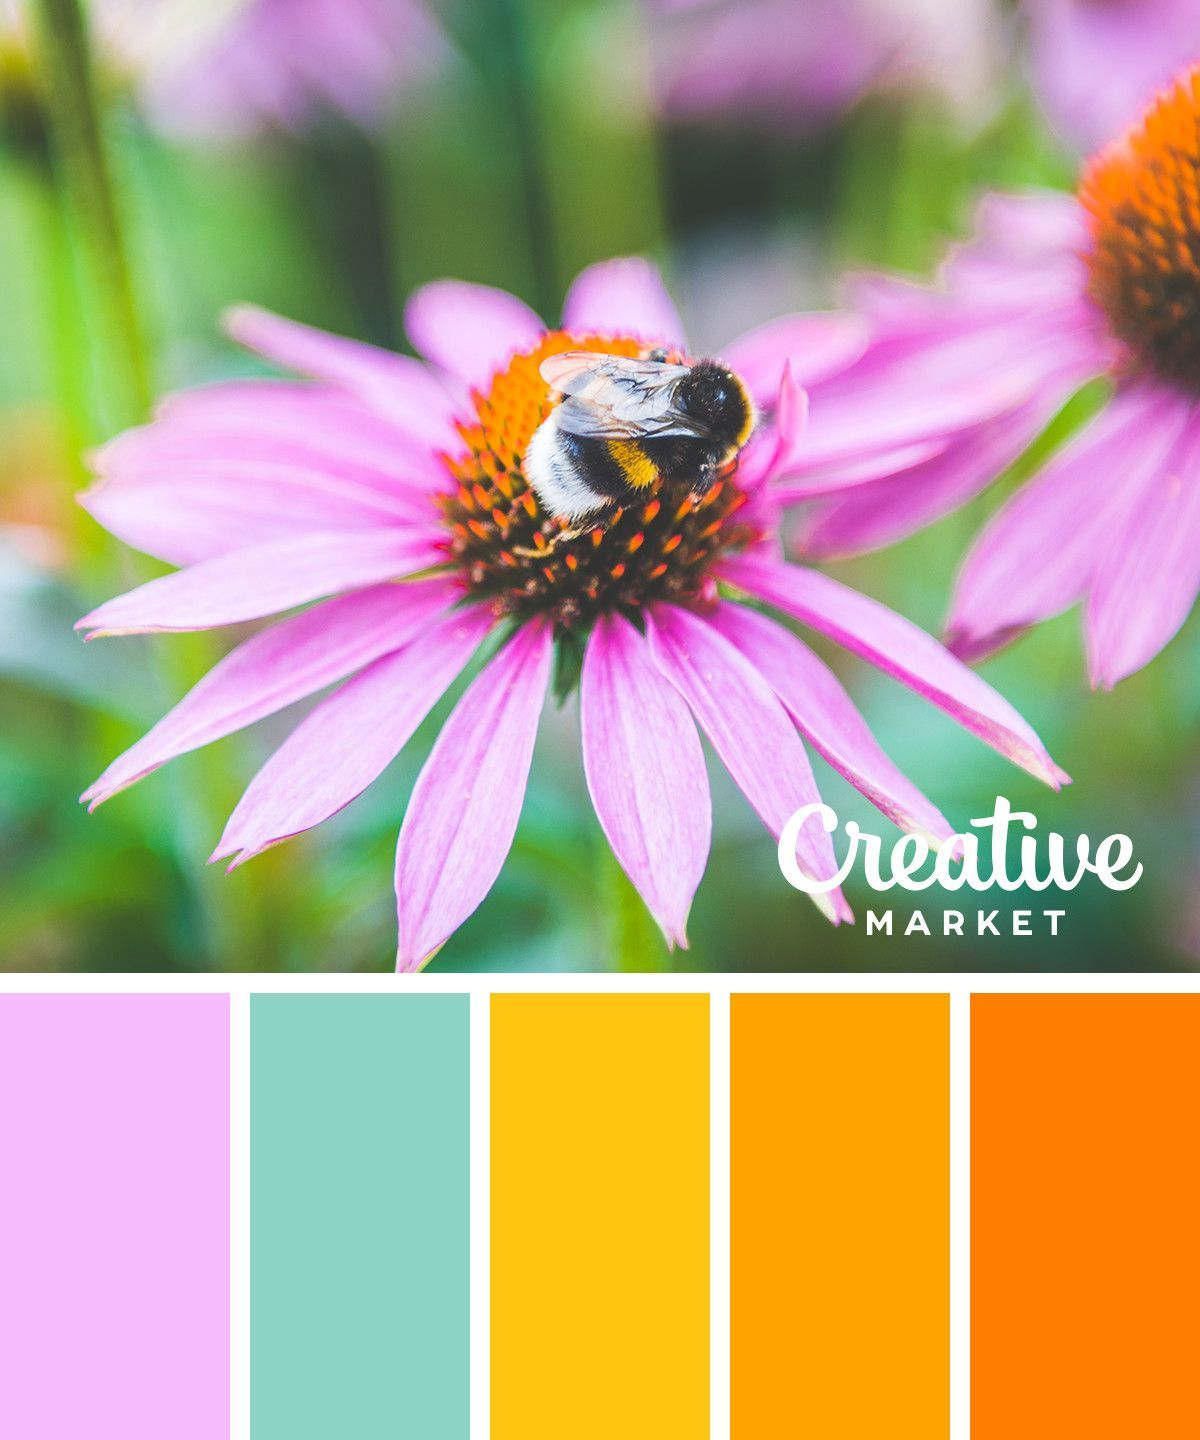 Wandfarbe Farbpalette 15 Fresh Color Palettes For Spring Creative Market Blog